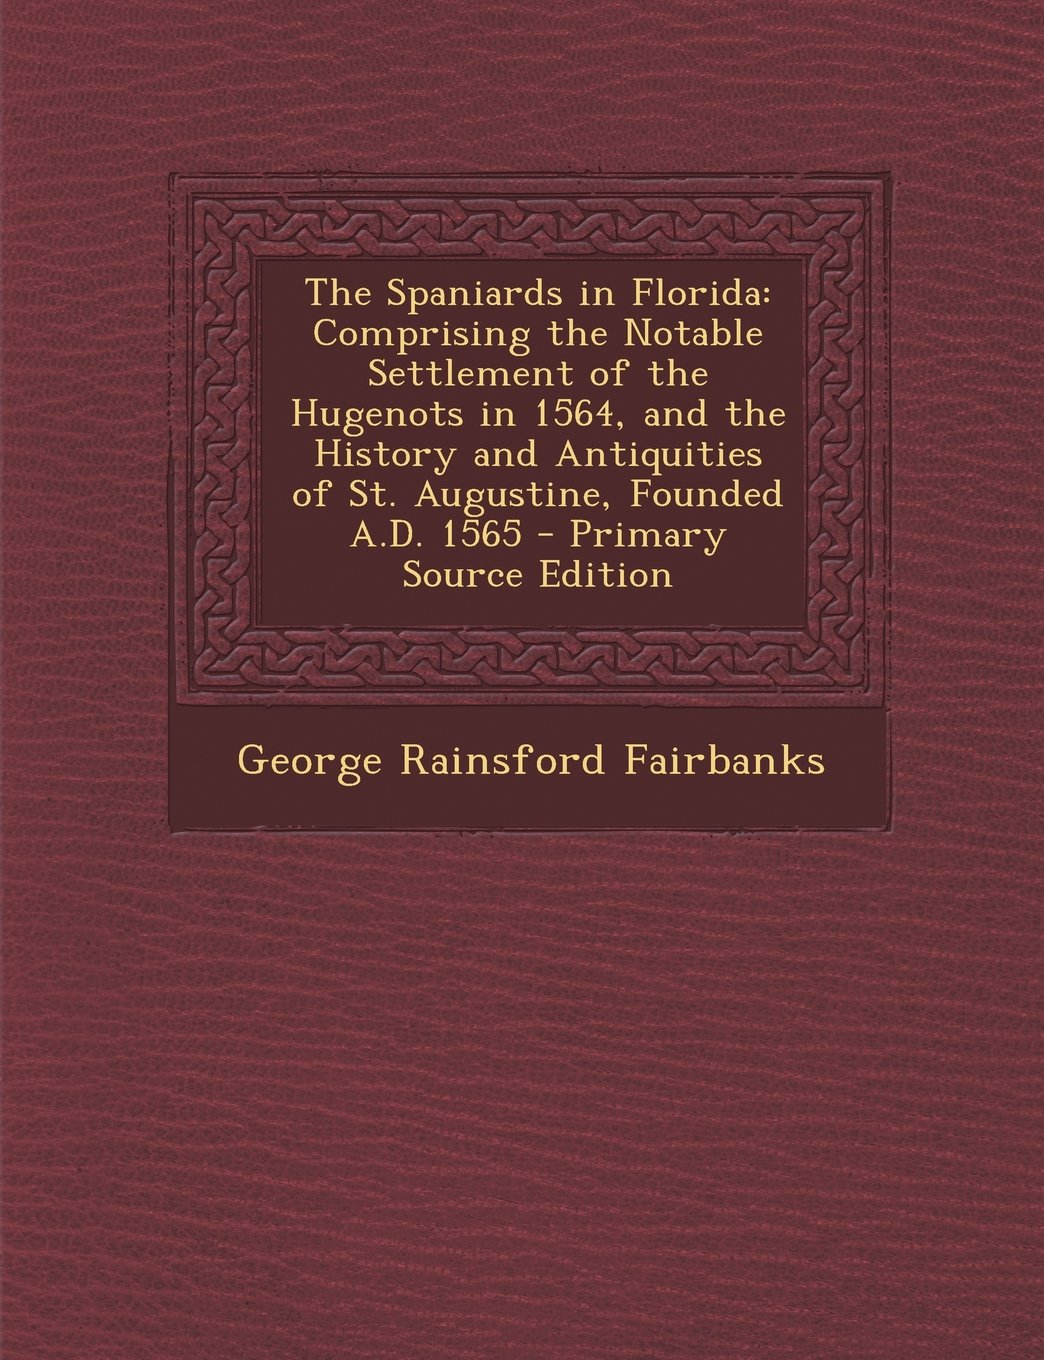 The Spaniards in Florida: Comprising the Notable Settlement of the Hugenots in 1564, and the History and Antiquities of St. Augustine, Founded A.D. 1565 pdf epub